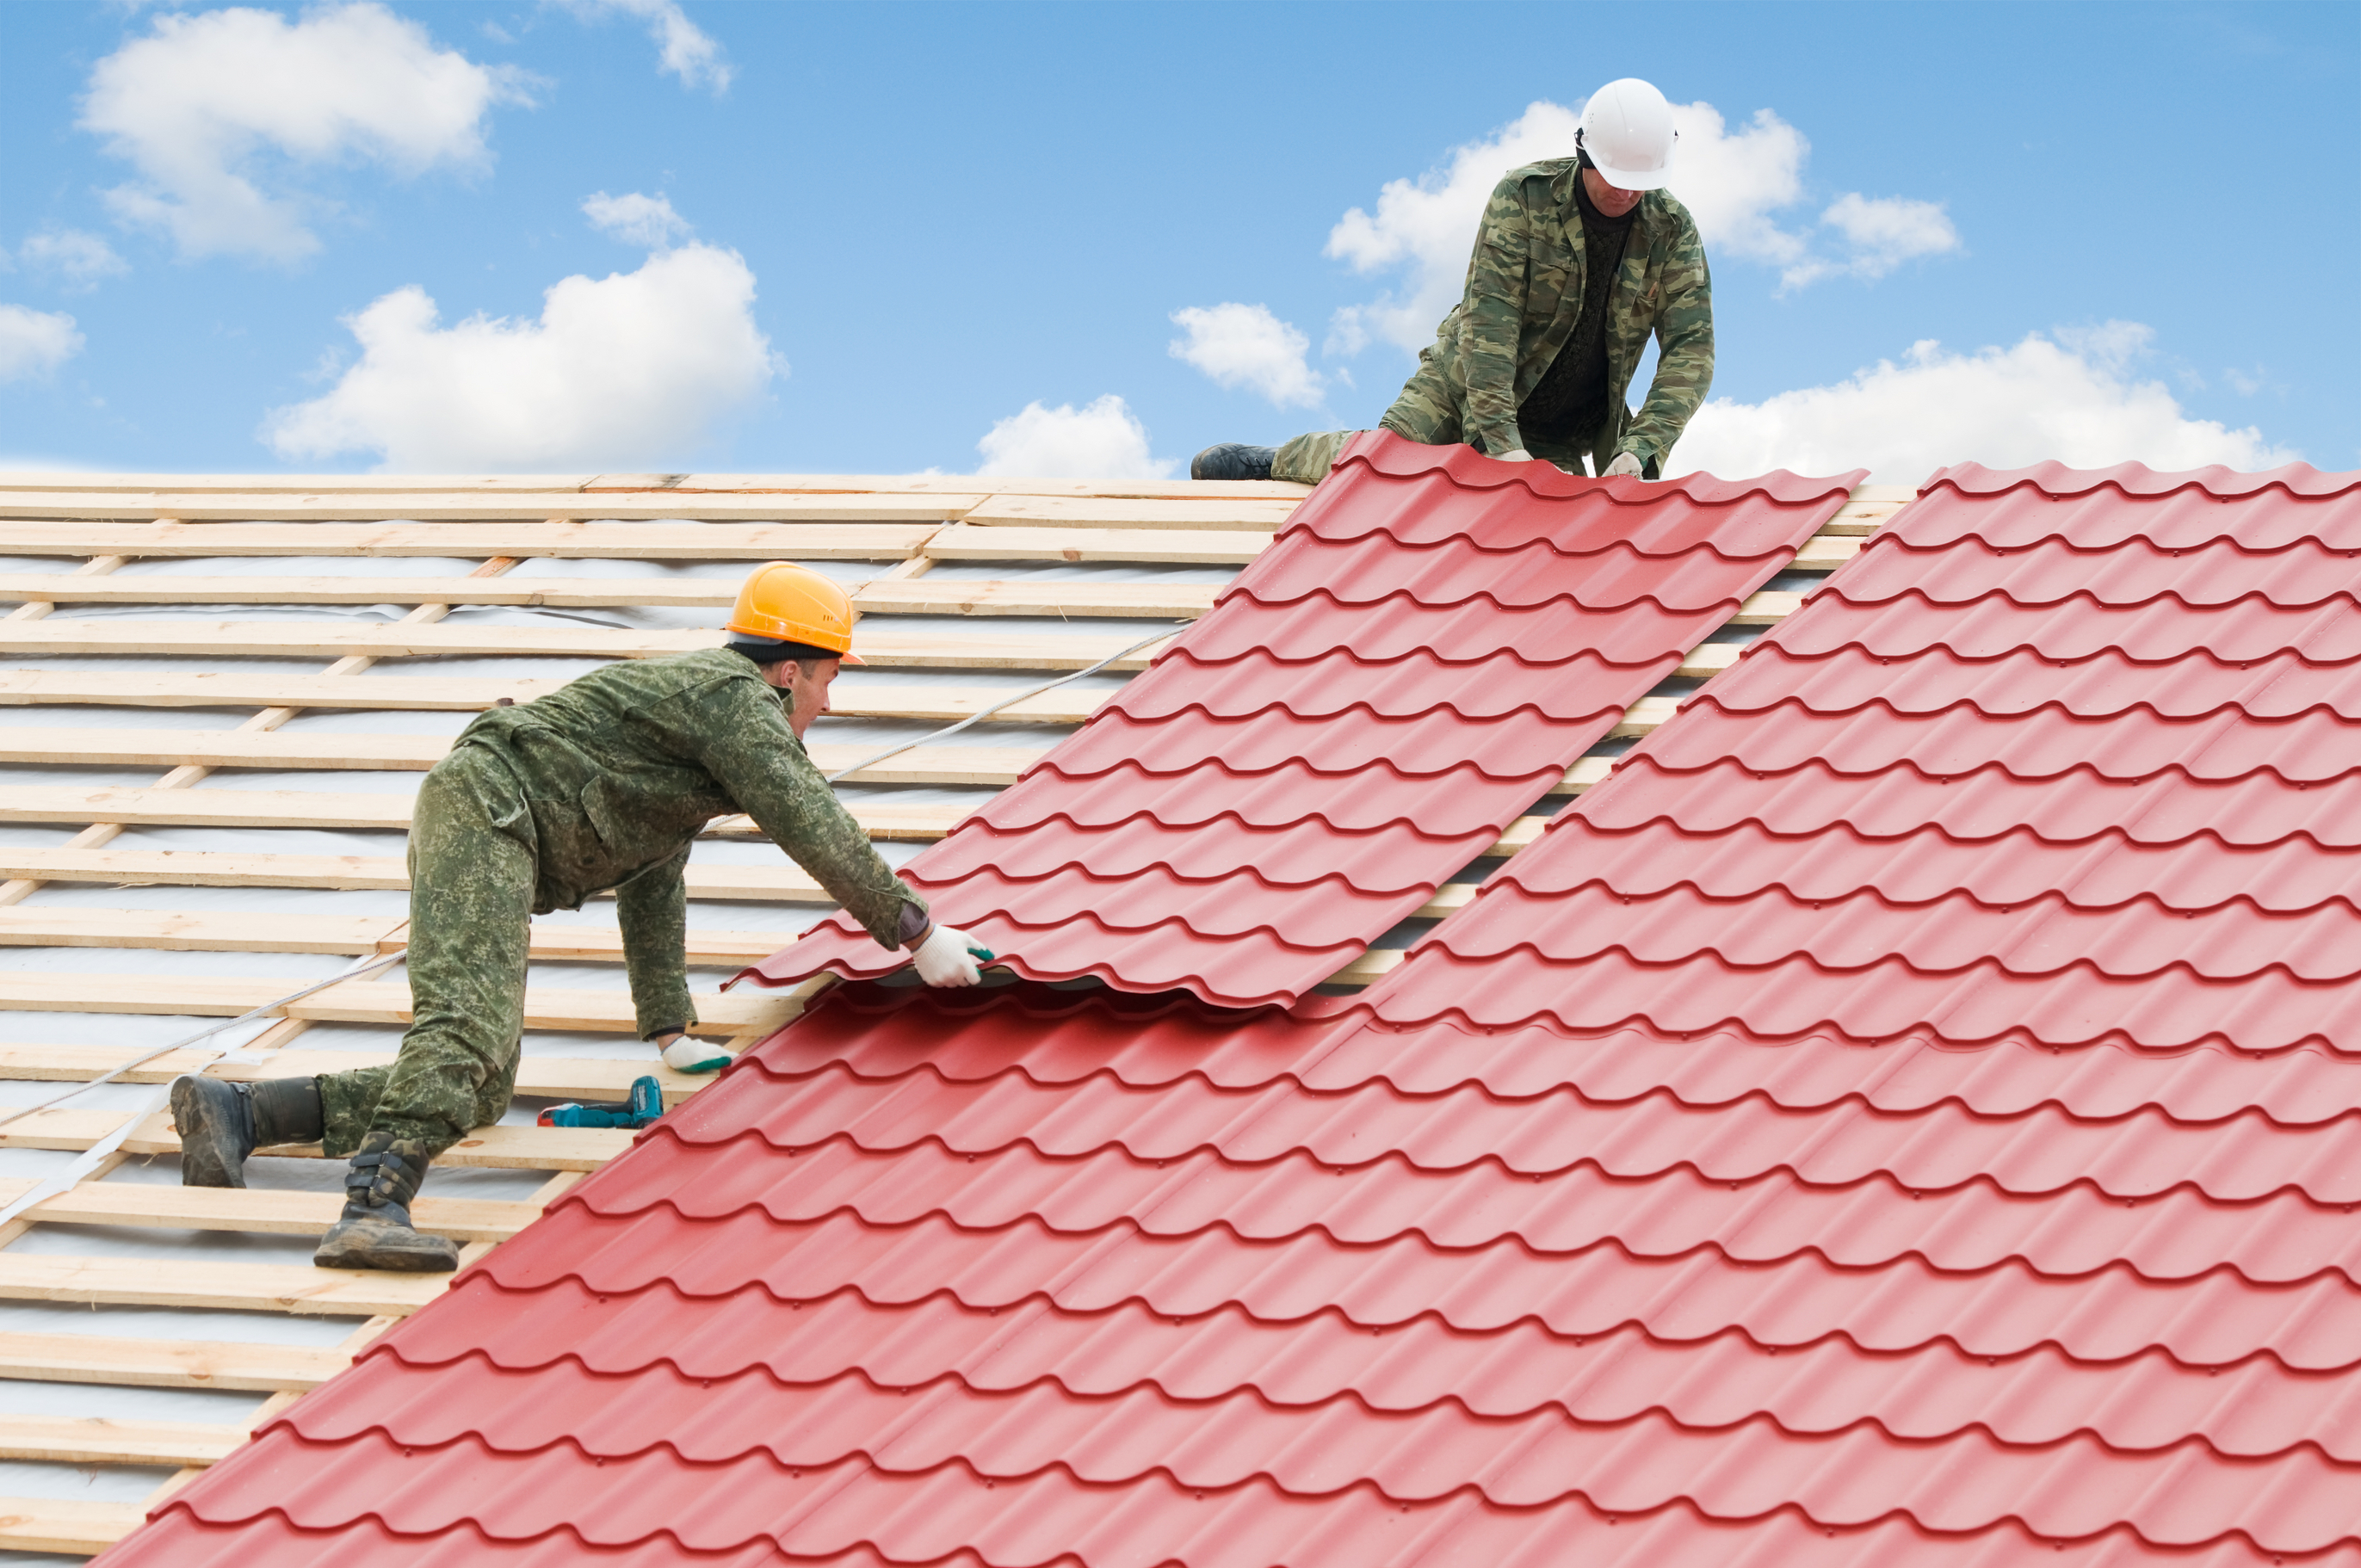 Roof-Repair-Miami